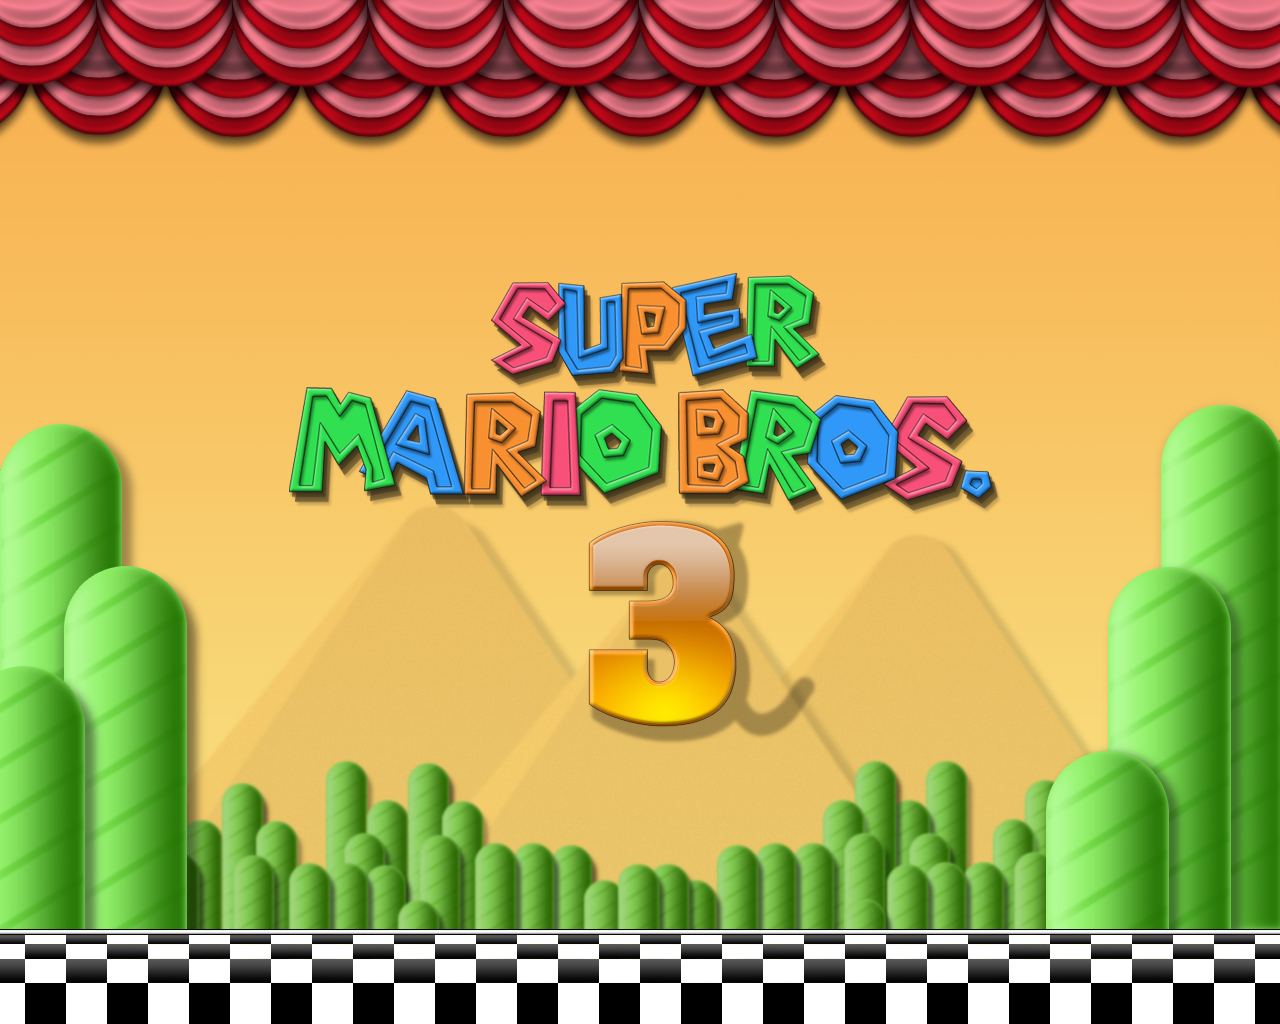 Download super mario game latest, super mario bros:3.